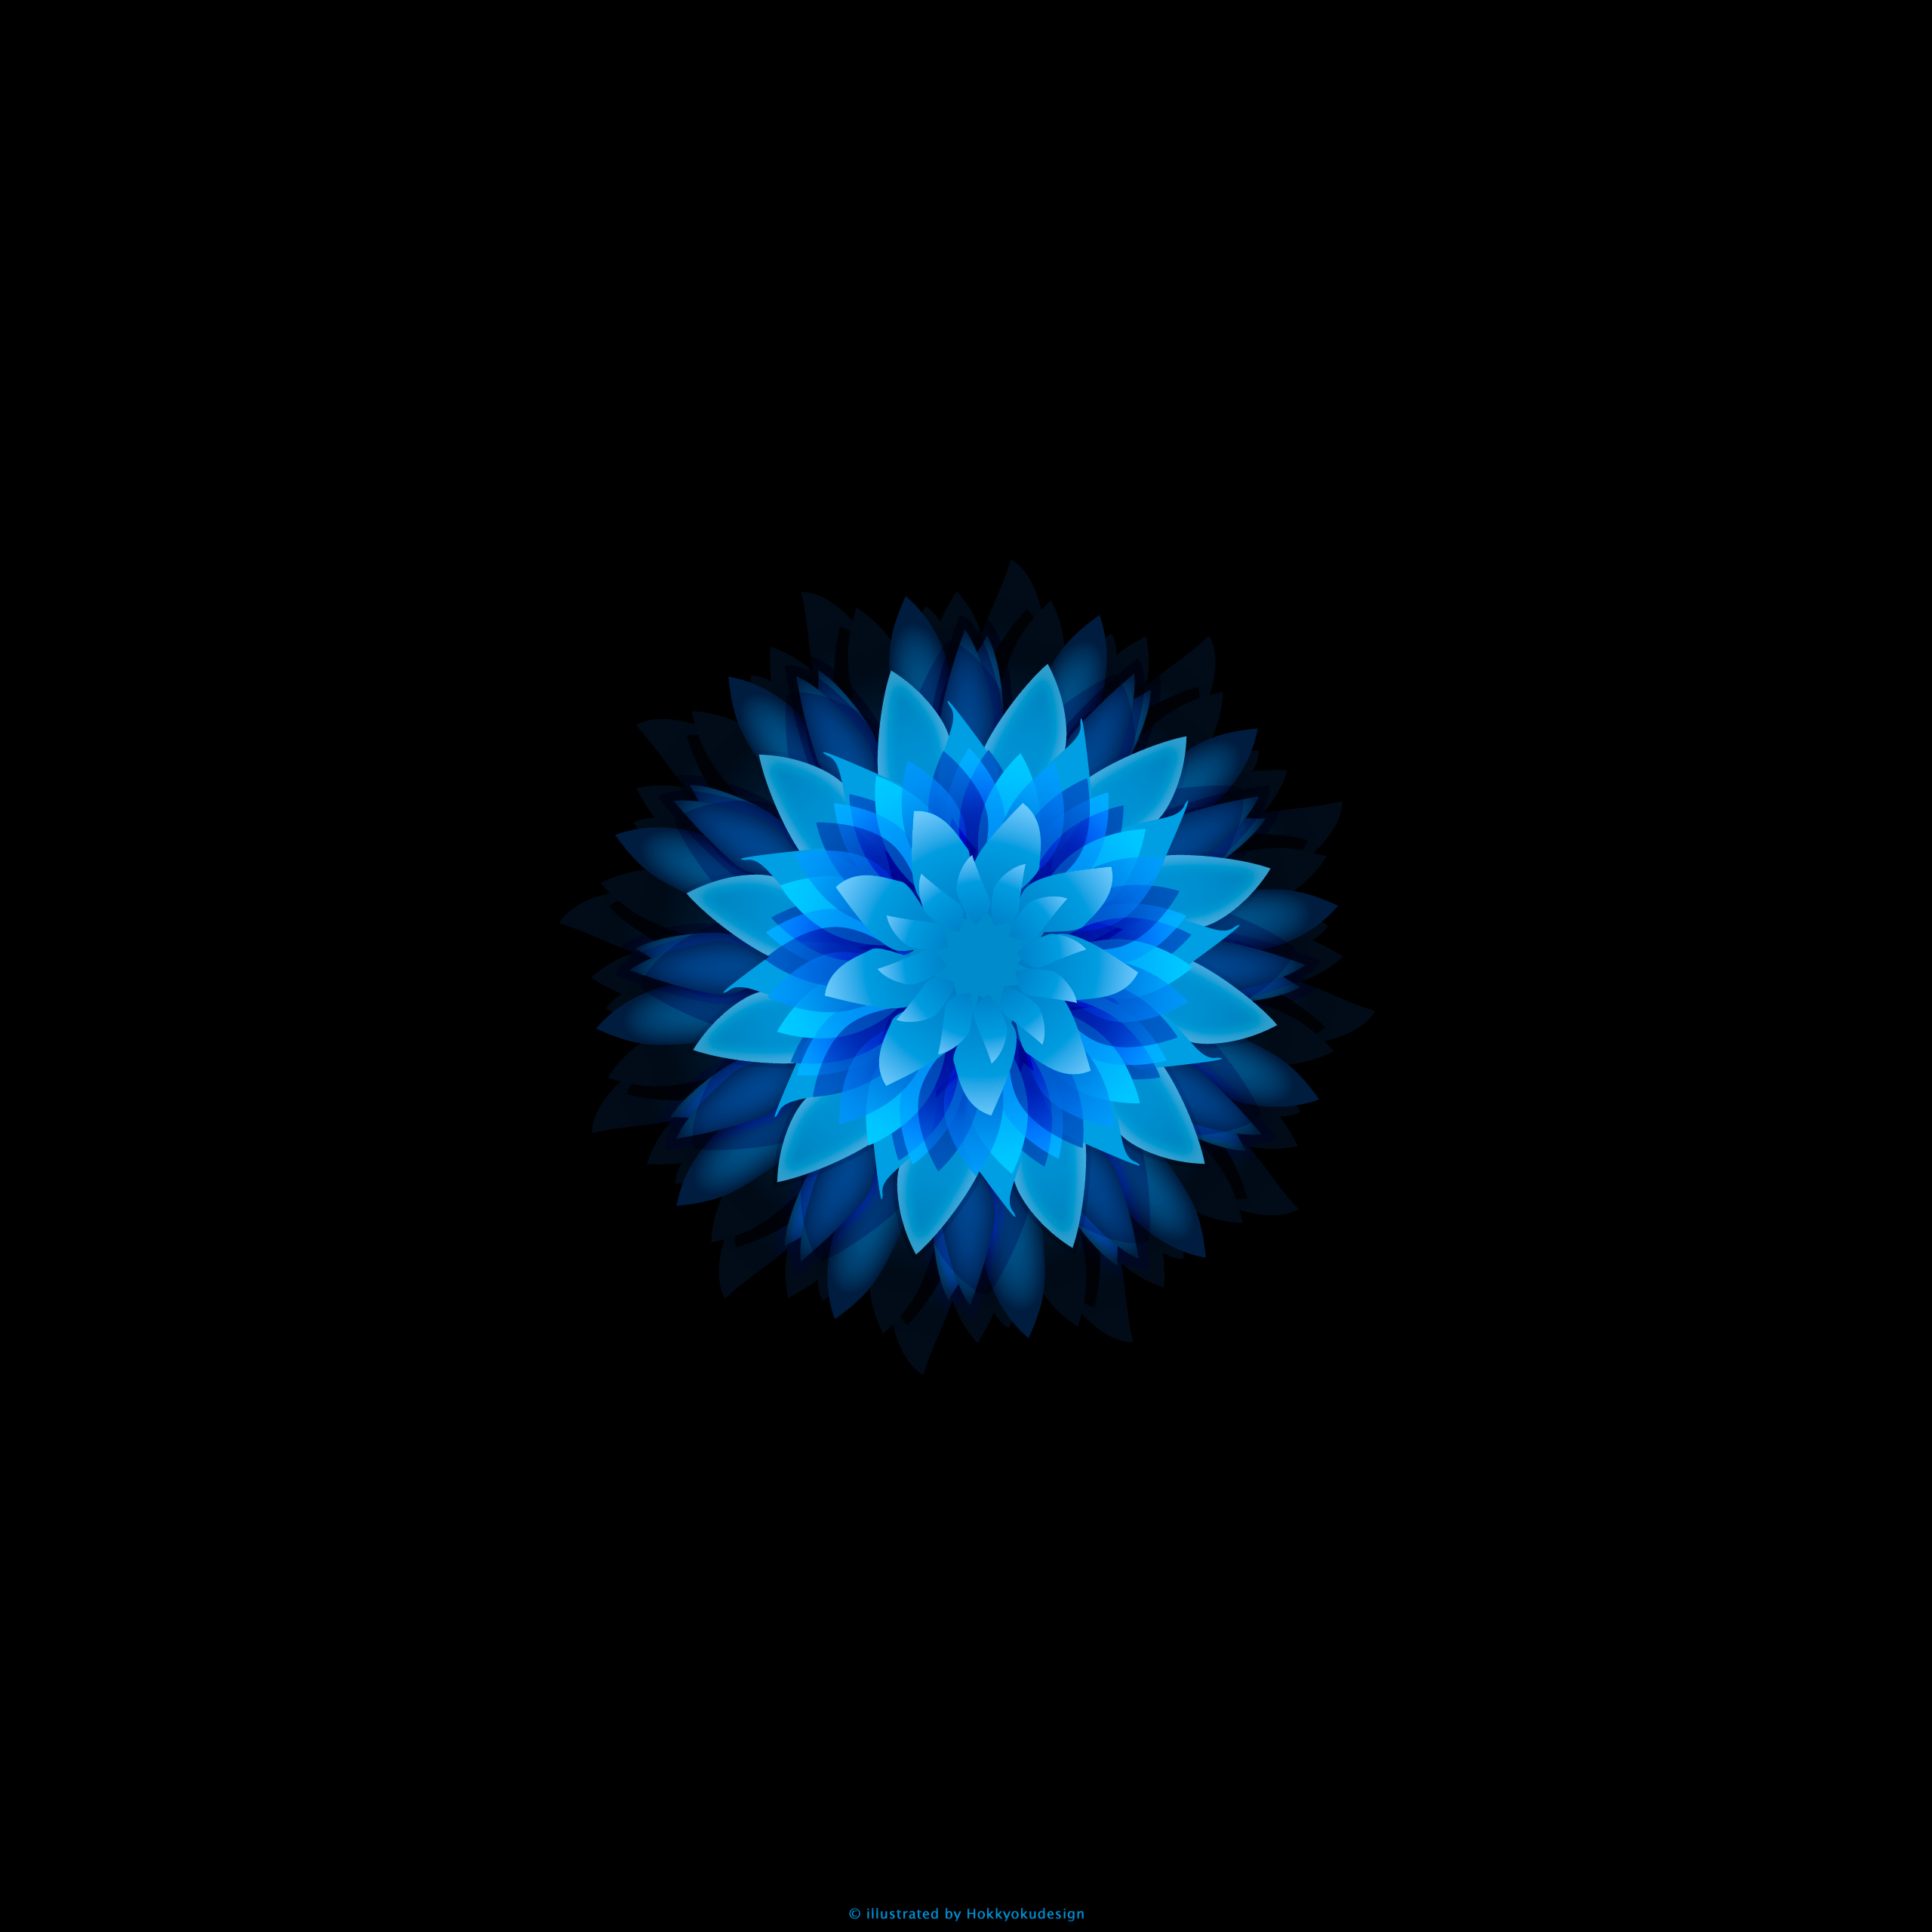 Ios壁紙 Iphone6 Plus Blue Flower Ios Iphone Flower Wallpaper For